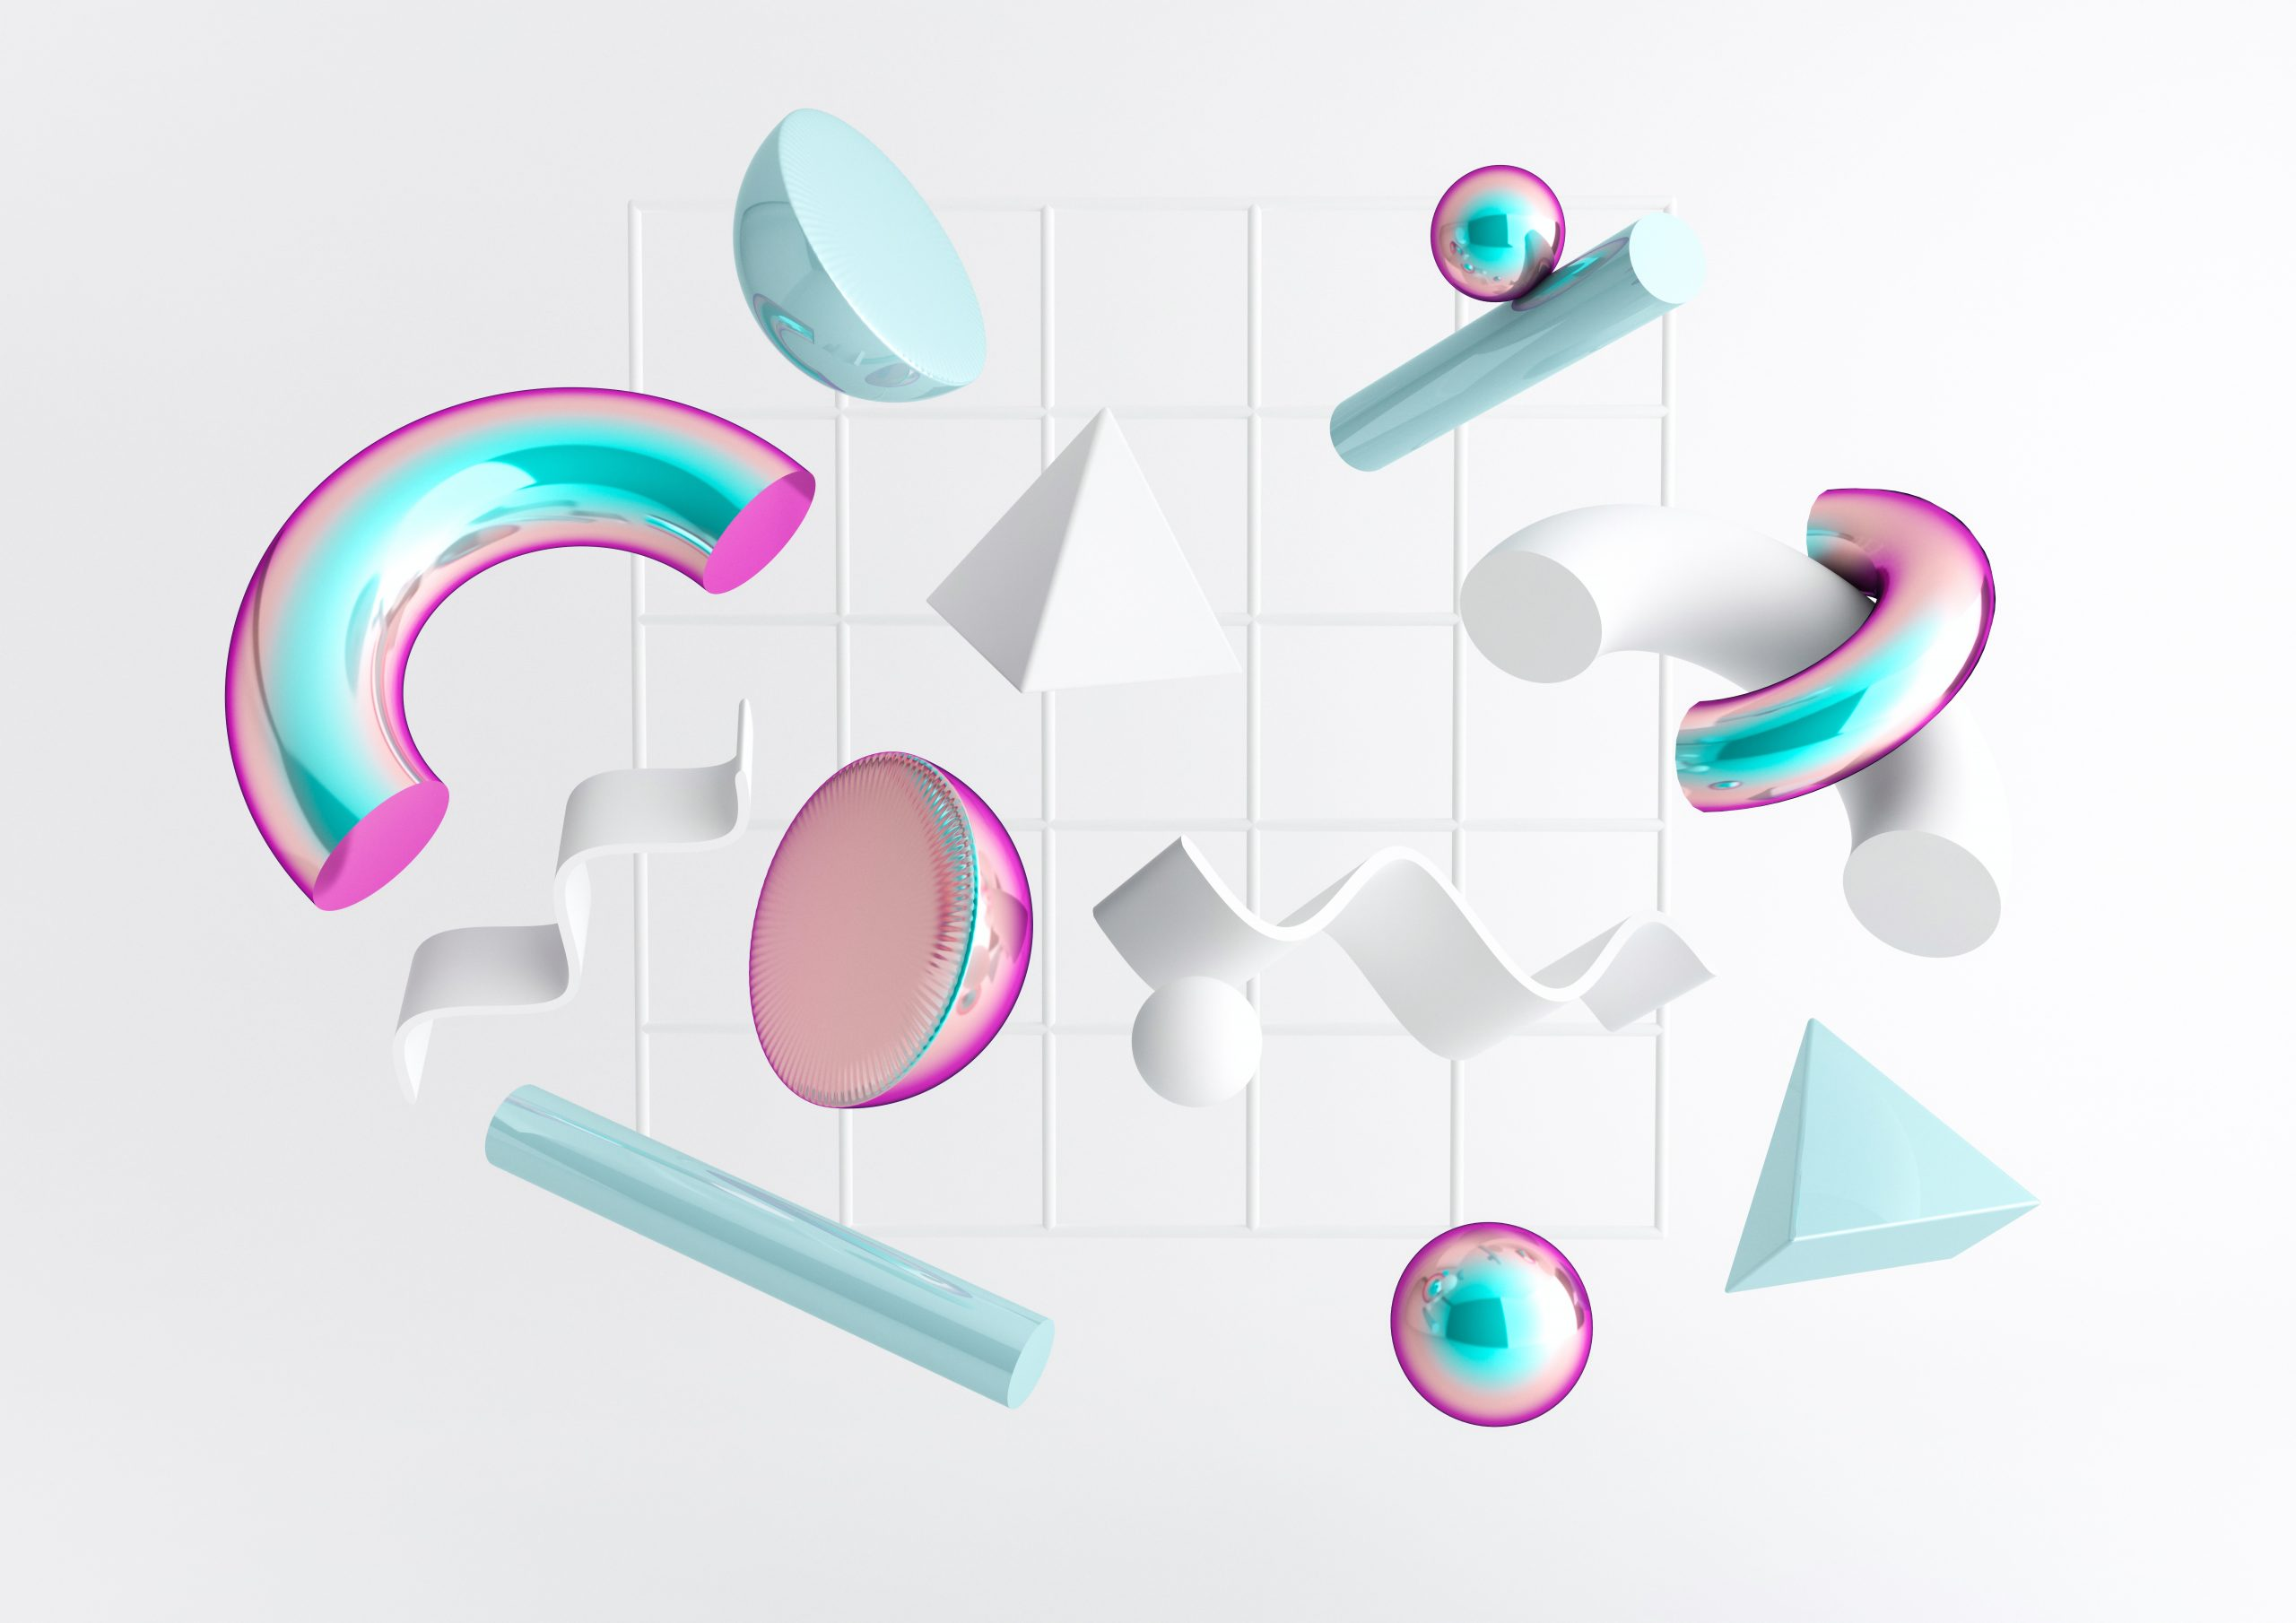 3d render realistic primitives composition. Flying shapes in motion isolated on white background. Abstract theme for trendy designs. Spheres, torus, tubes, cones in white and holographic colors.